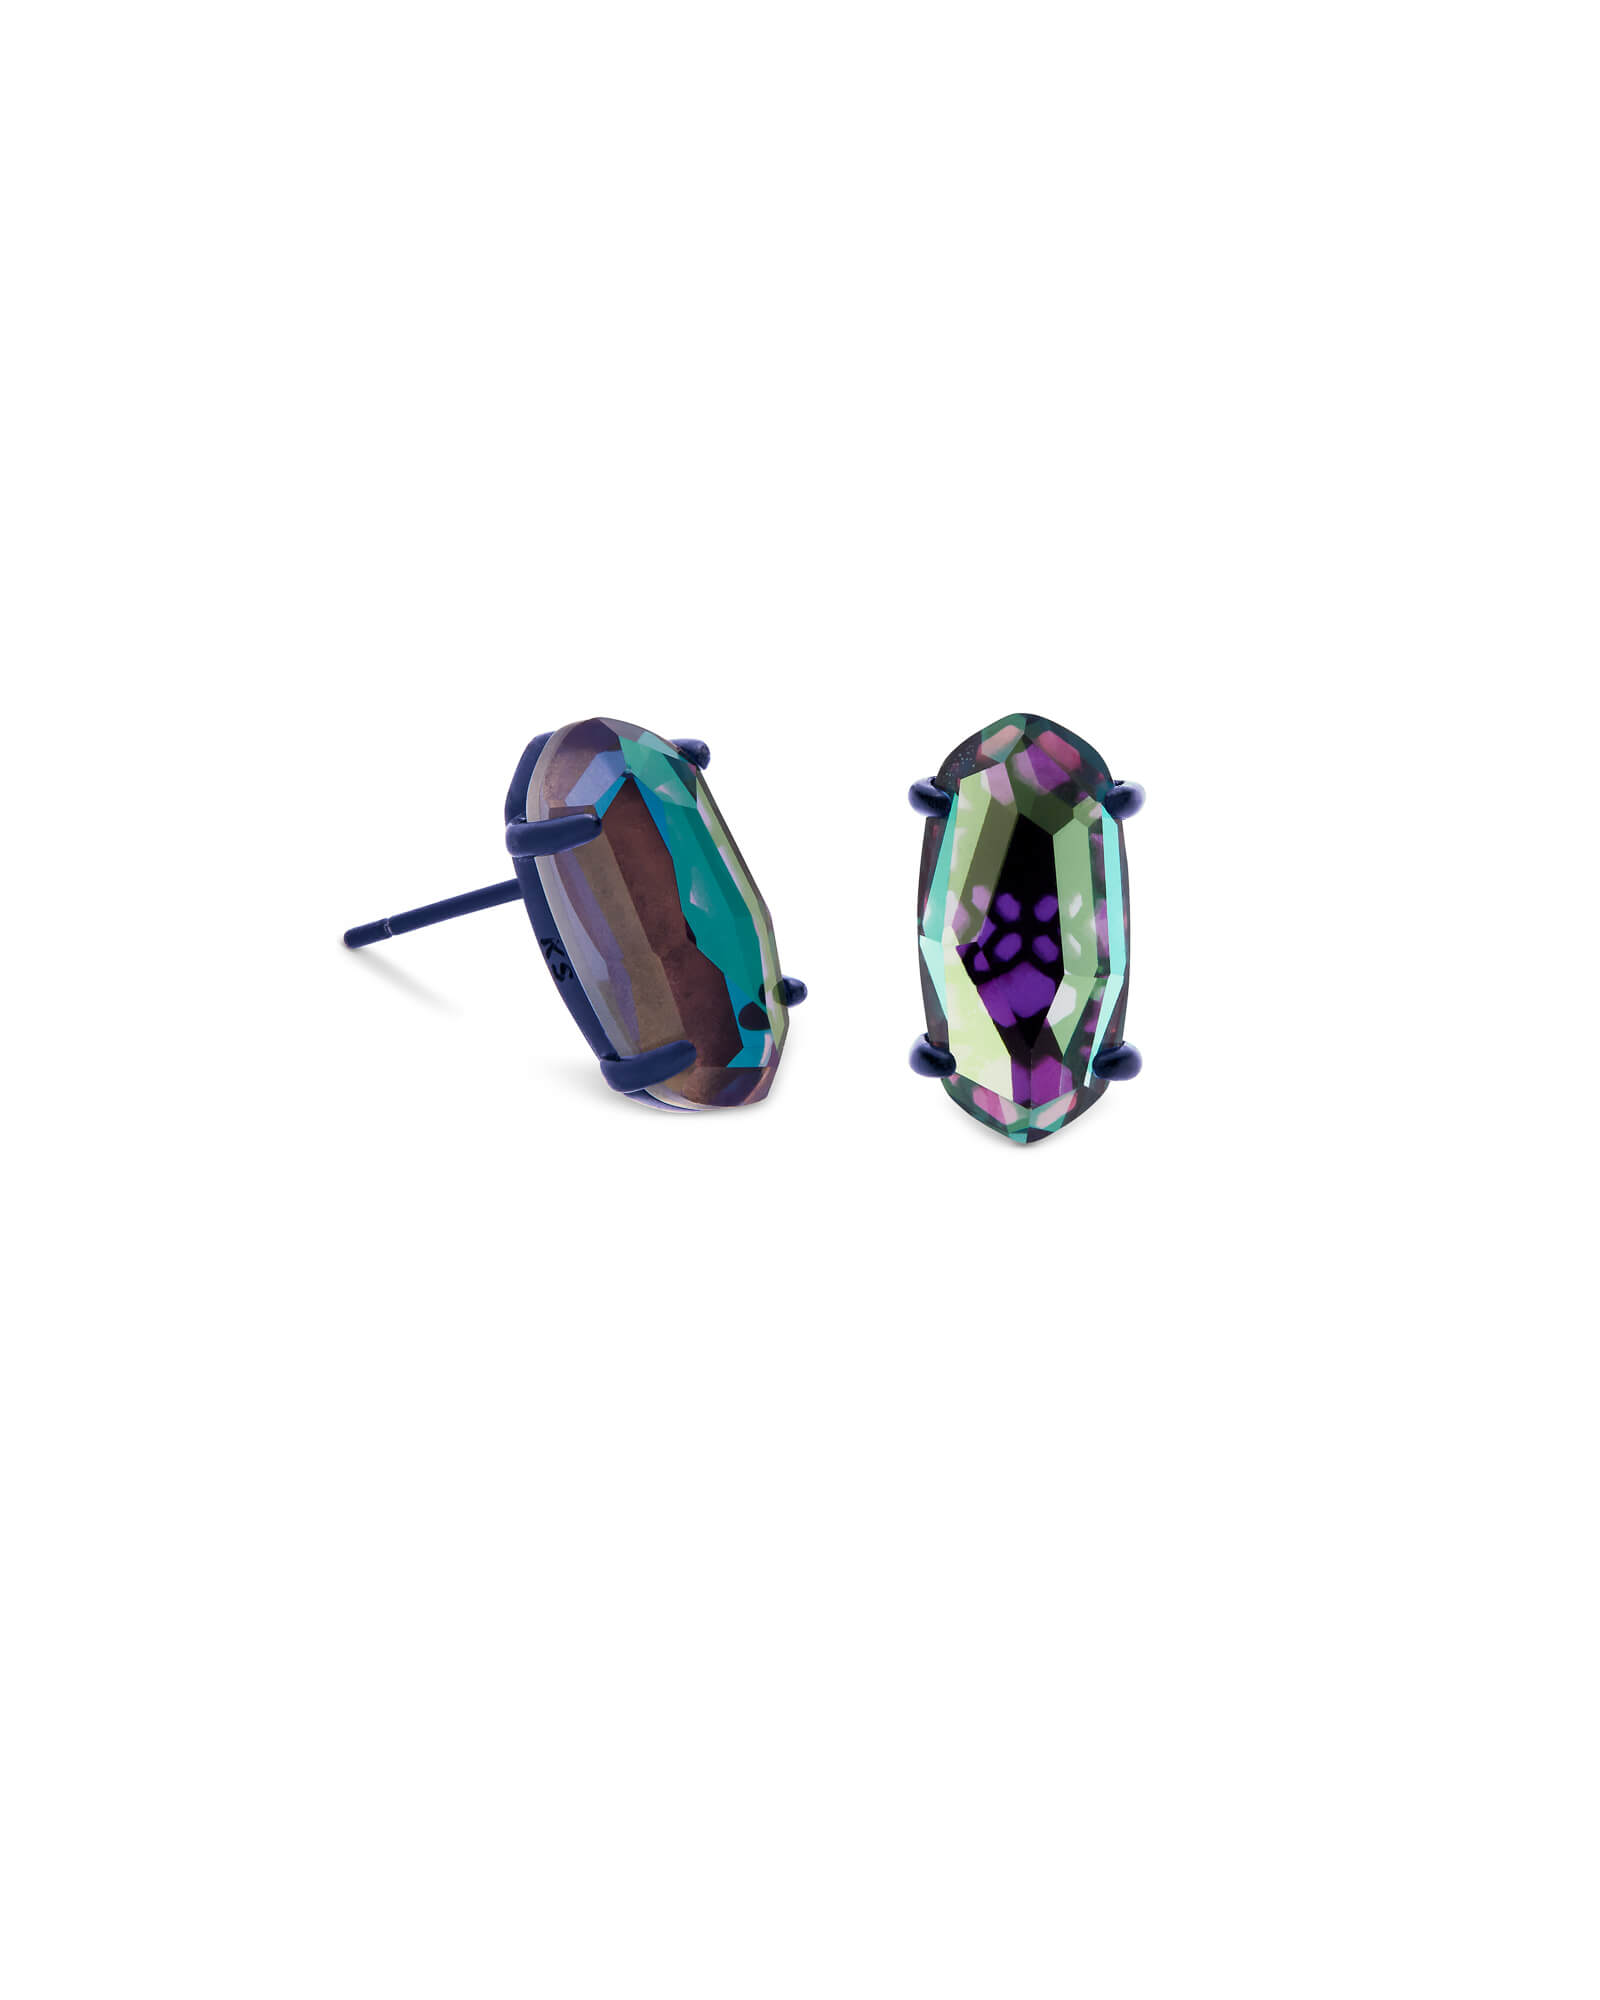 Betty Navy Gunmetal Stud Earrings in Indigo Dichroic Glass